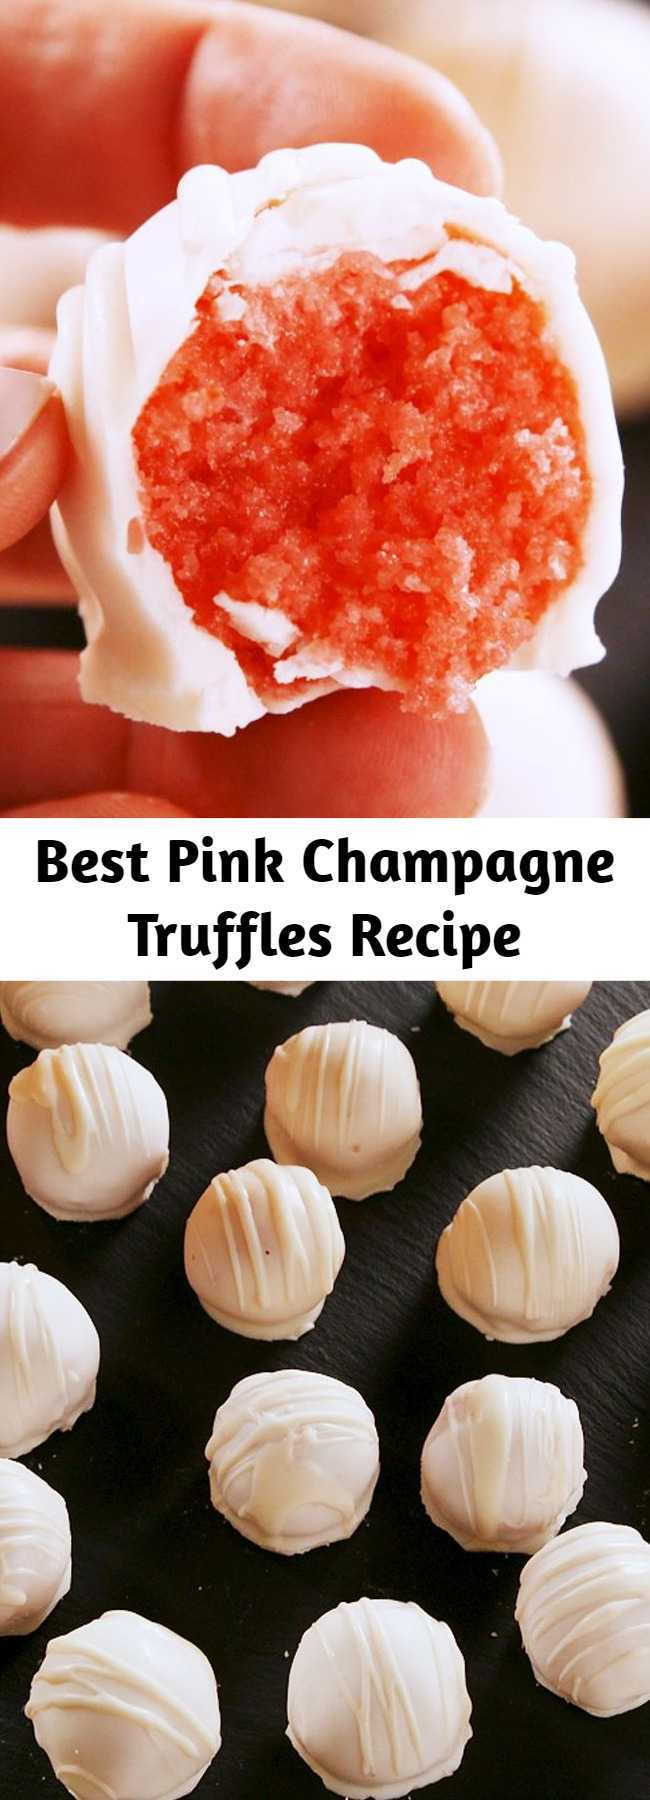 Best Pink Champagne Truffles Recipe - These pretty truffles start with the coolest cake mix hack. You whisk champagne into the batter. Don't worry, not all the booze bakes off—there's also a little bubbly in the frosting.